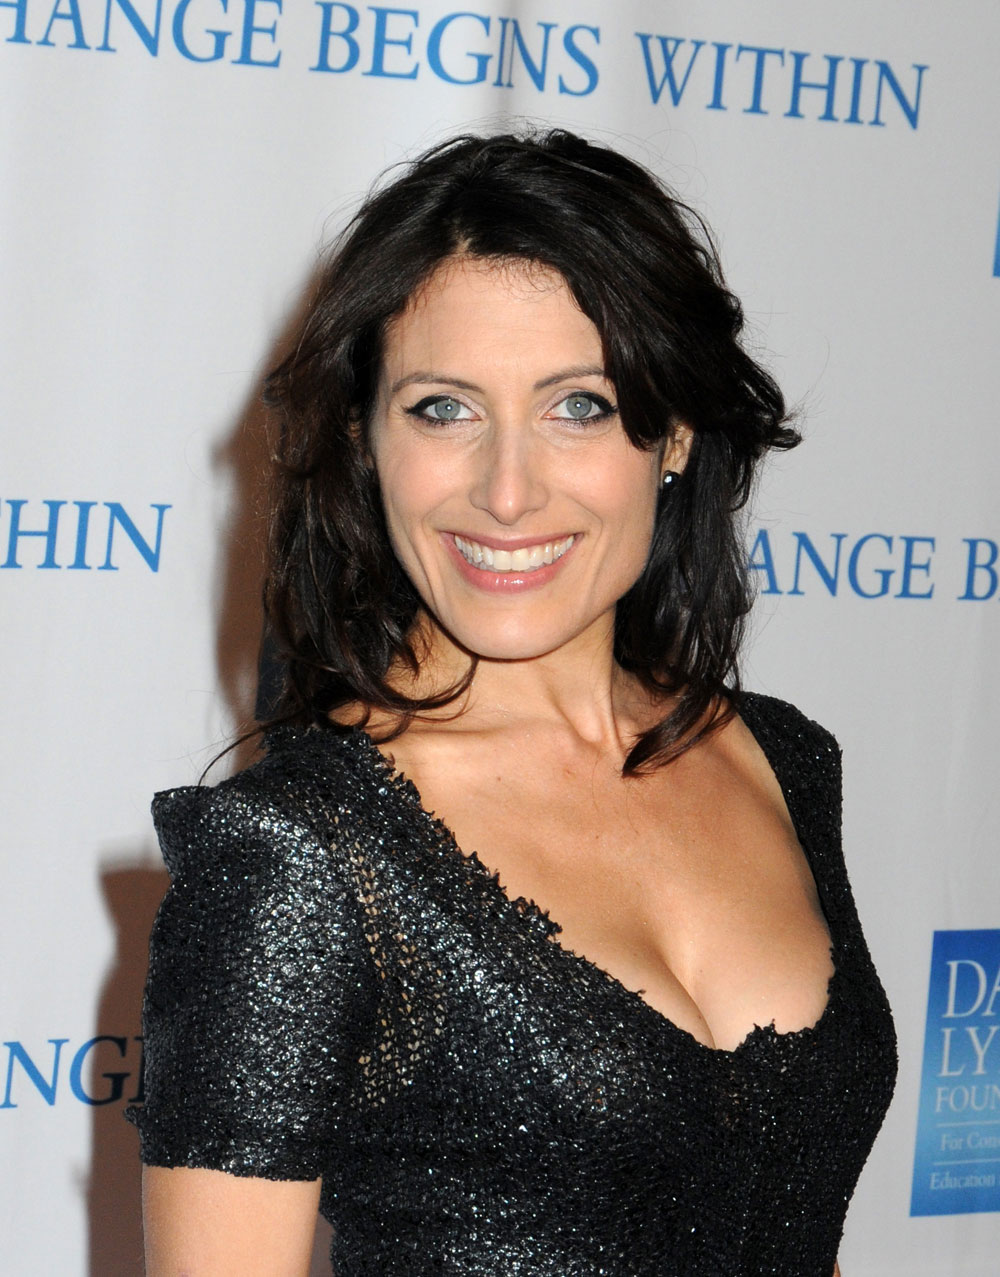 lisa edelstein relationshipslisa edelstein instagram, lisa edelstein 2017, lisa edelstein and robert russell, lisa edelstein house, lisa edelstein paul adelstein, lisa edelstein фото, lisa edelstein er, lisa edelstein imdb, lisa edelstein yoga, lisa edelstein family, lisa edelstein as good as it gets, lisa edelstein seinfeld, lisa edelstein astrotheme, lisa edelstein hugh laurie relationship, lisa edelstein facebook, lisa edelstein good wife, lisa edelstein filmography, lisa edelstein relationships, lisa edelstein biography, lisa edelstein height